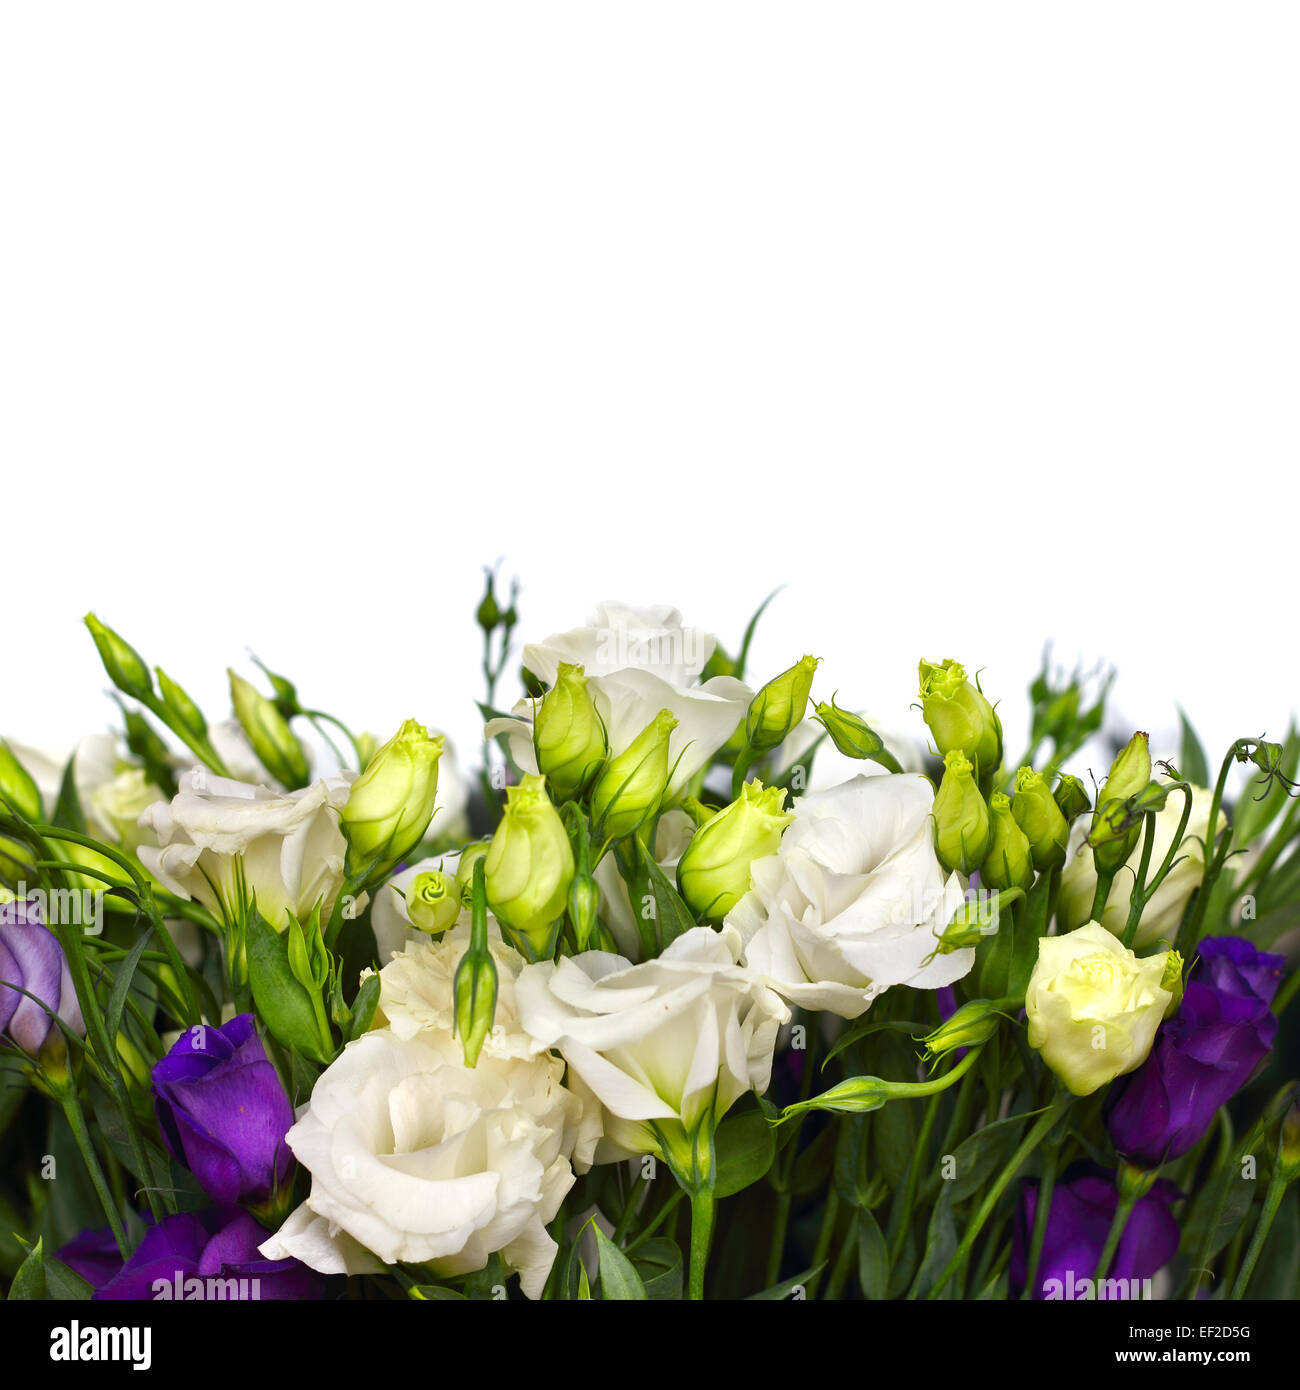 Bouquet of white and violet lisianthus flowers on white stock photo bouquet of white and violet lisianthus flowers on white altavistaventures Choice Image